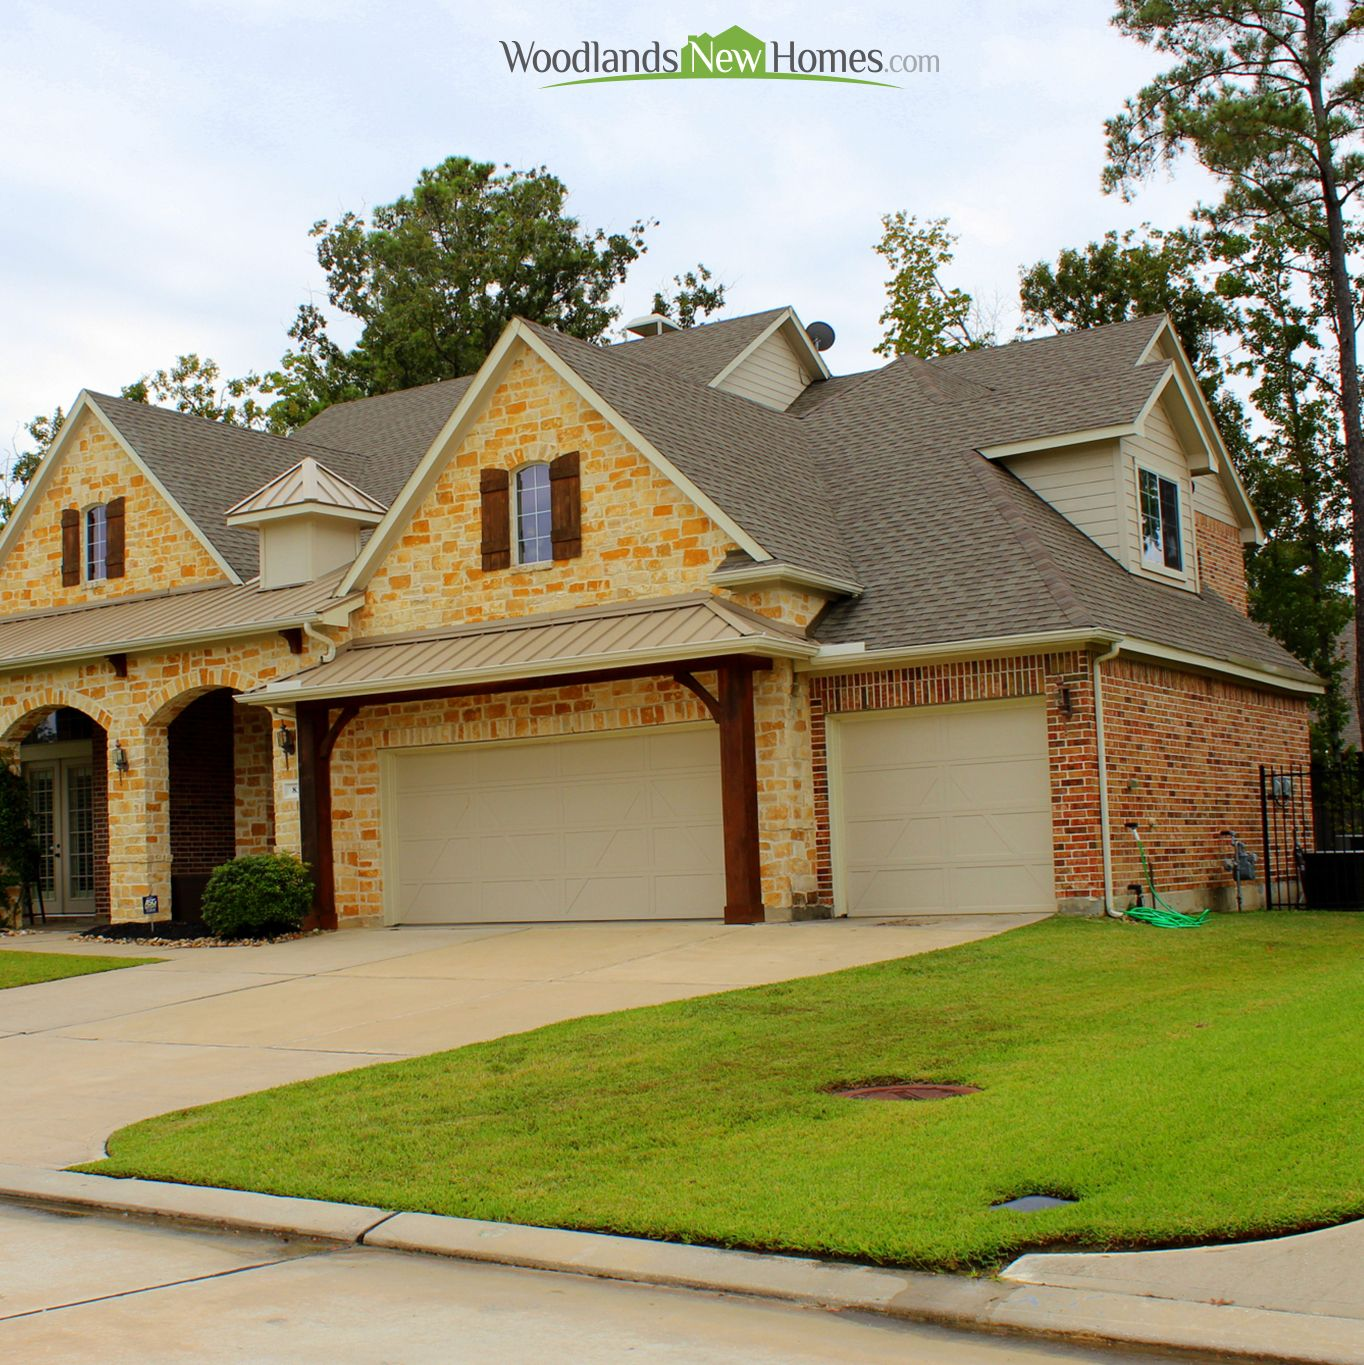 Home For Sale In TheWoodladns Village Of Creekside Park Exterior